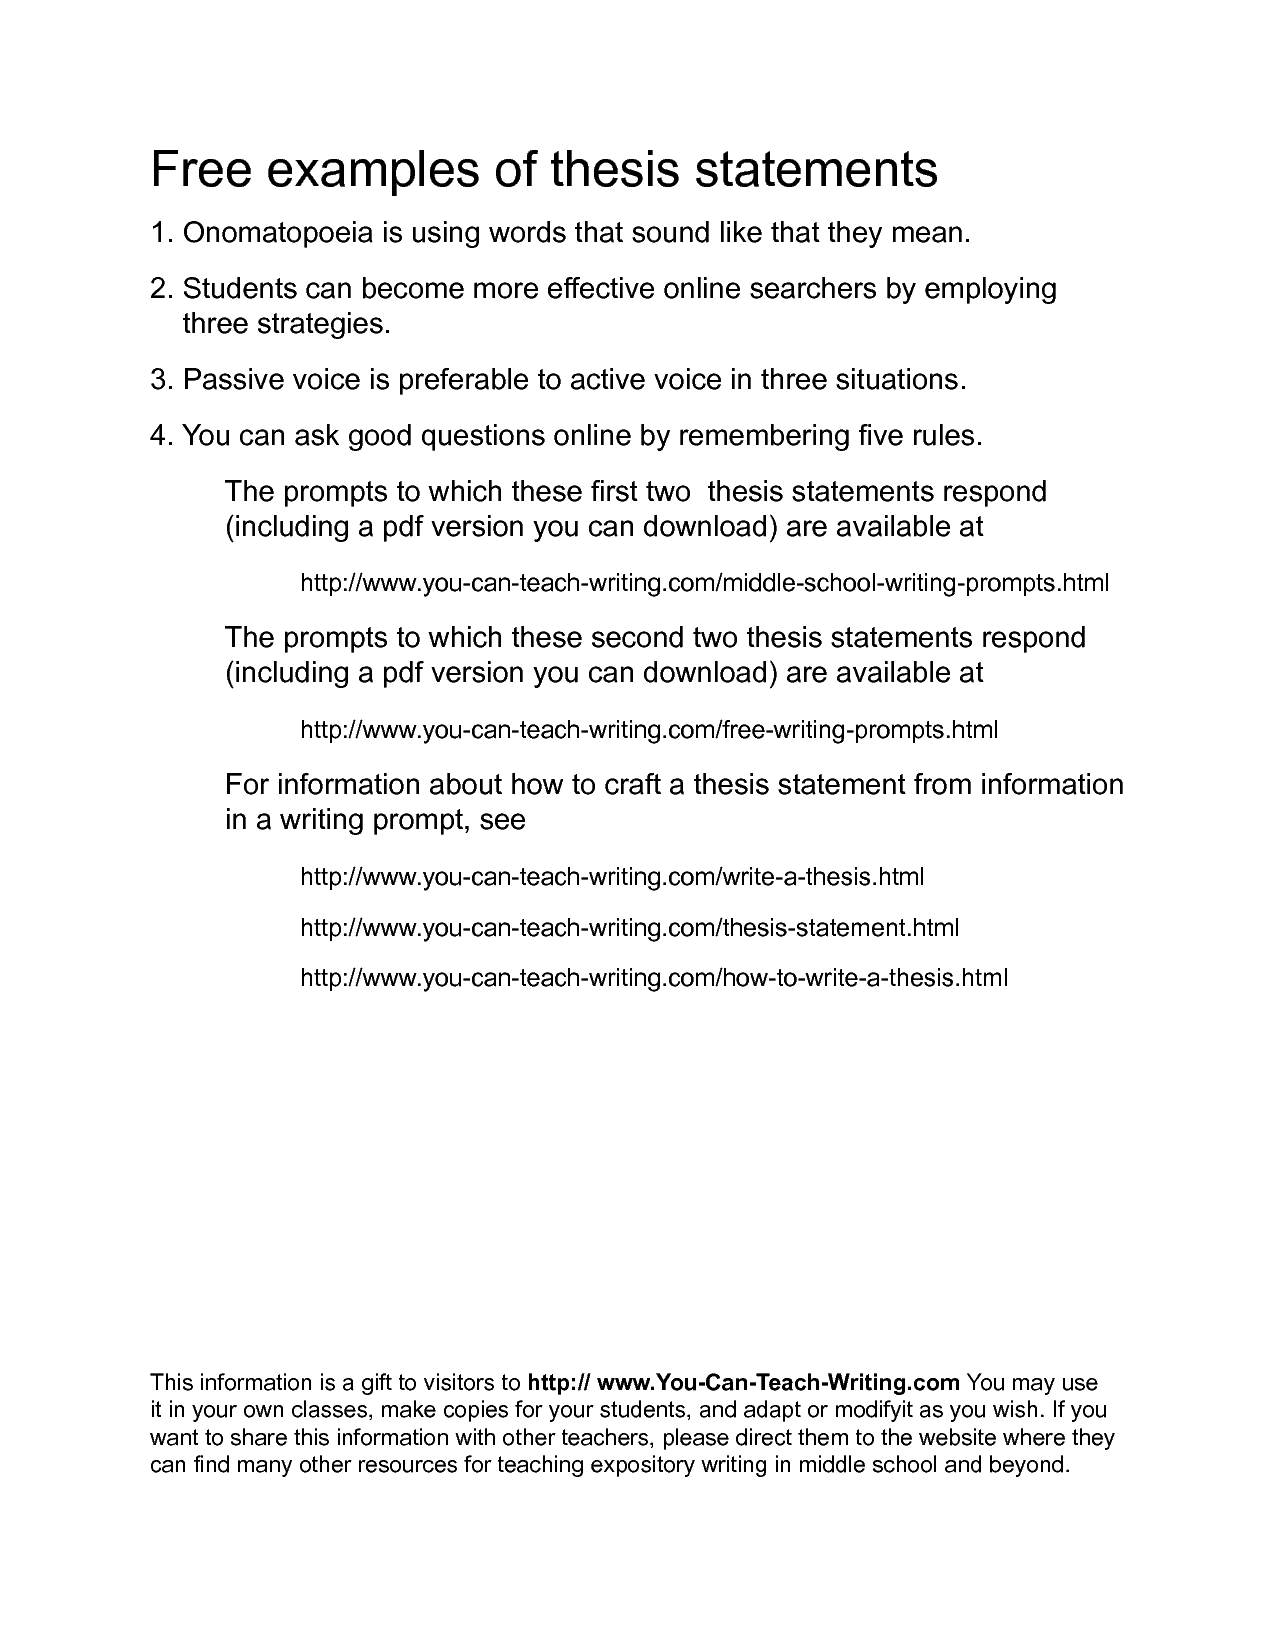 Essay On Healthy Living  Synthesis Essay Ideas also Romeo And Juliet English Essay Purpose Of A Thesis Statement  Thesis  Thesis Statement  In An Essay What Is A Thesis Statement